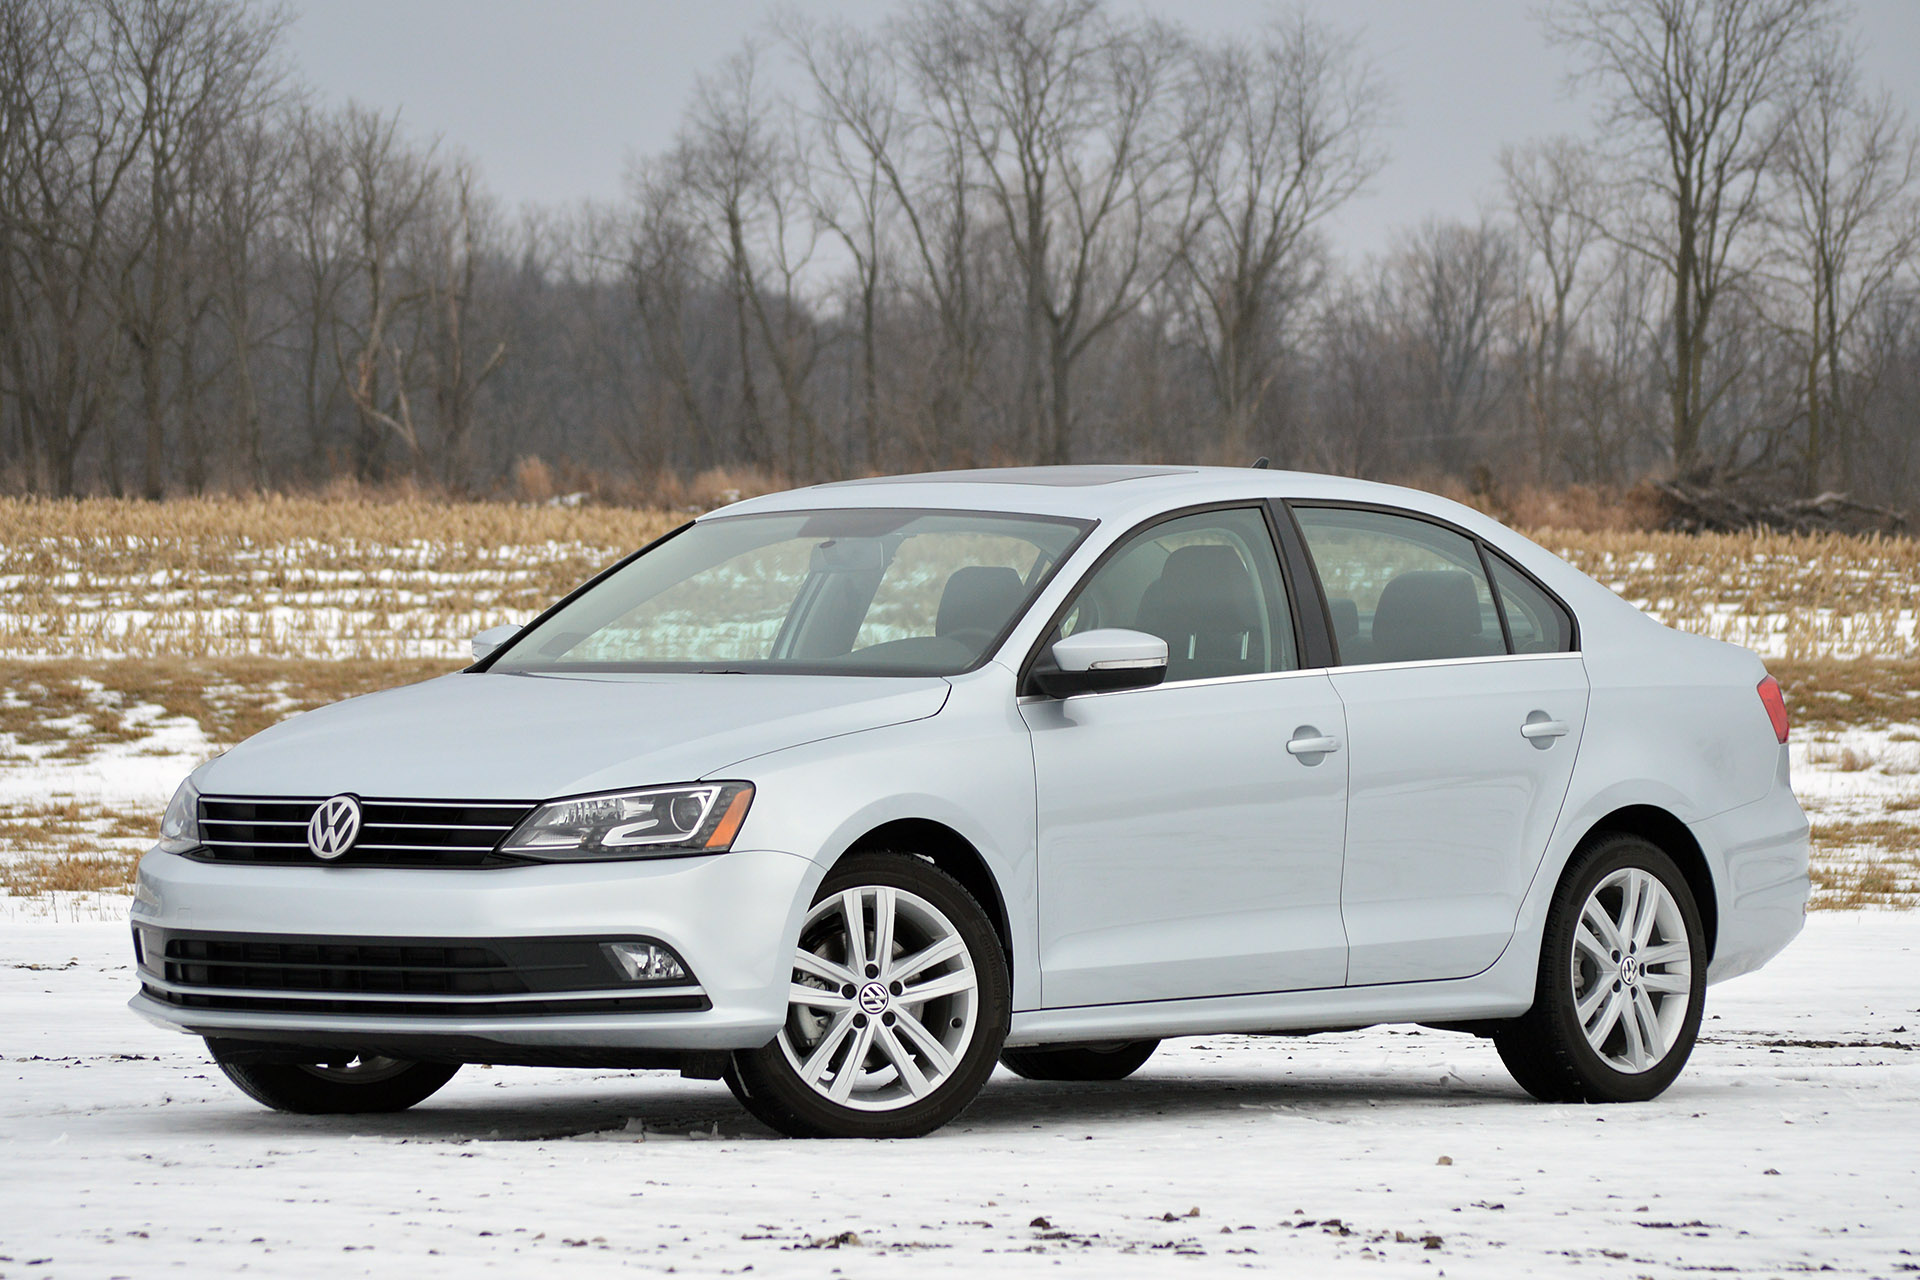 volkswagen jetta tdi prices reviews and new model information autoblog. Black Bedroom Furniture Sets. Home Design Ideas